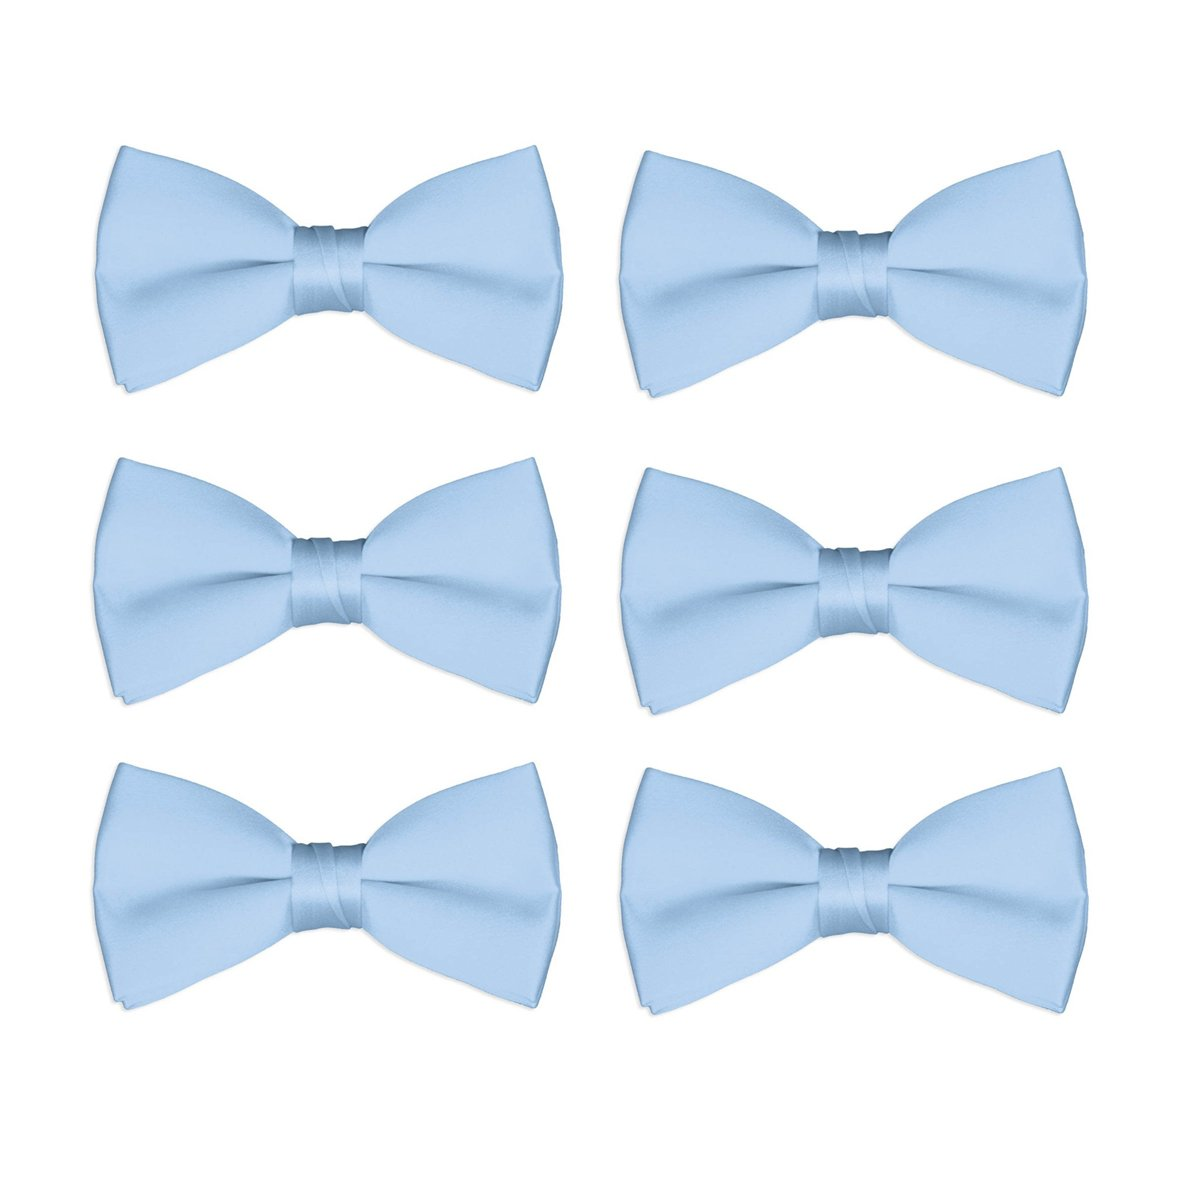 Boys Bow Tie Wholesale 6 Pack Children Pre-Tied Formal Tuxedo Bowties Kids Solid Ties (Sky Blue)